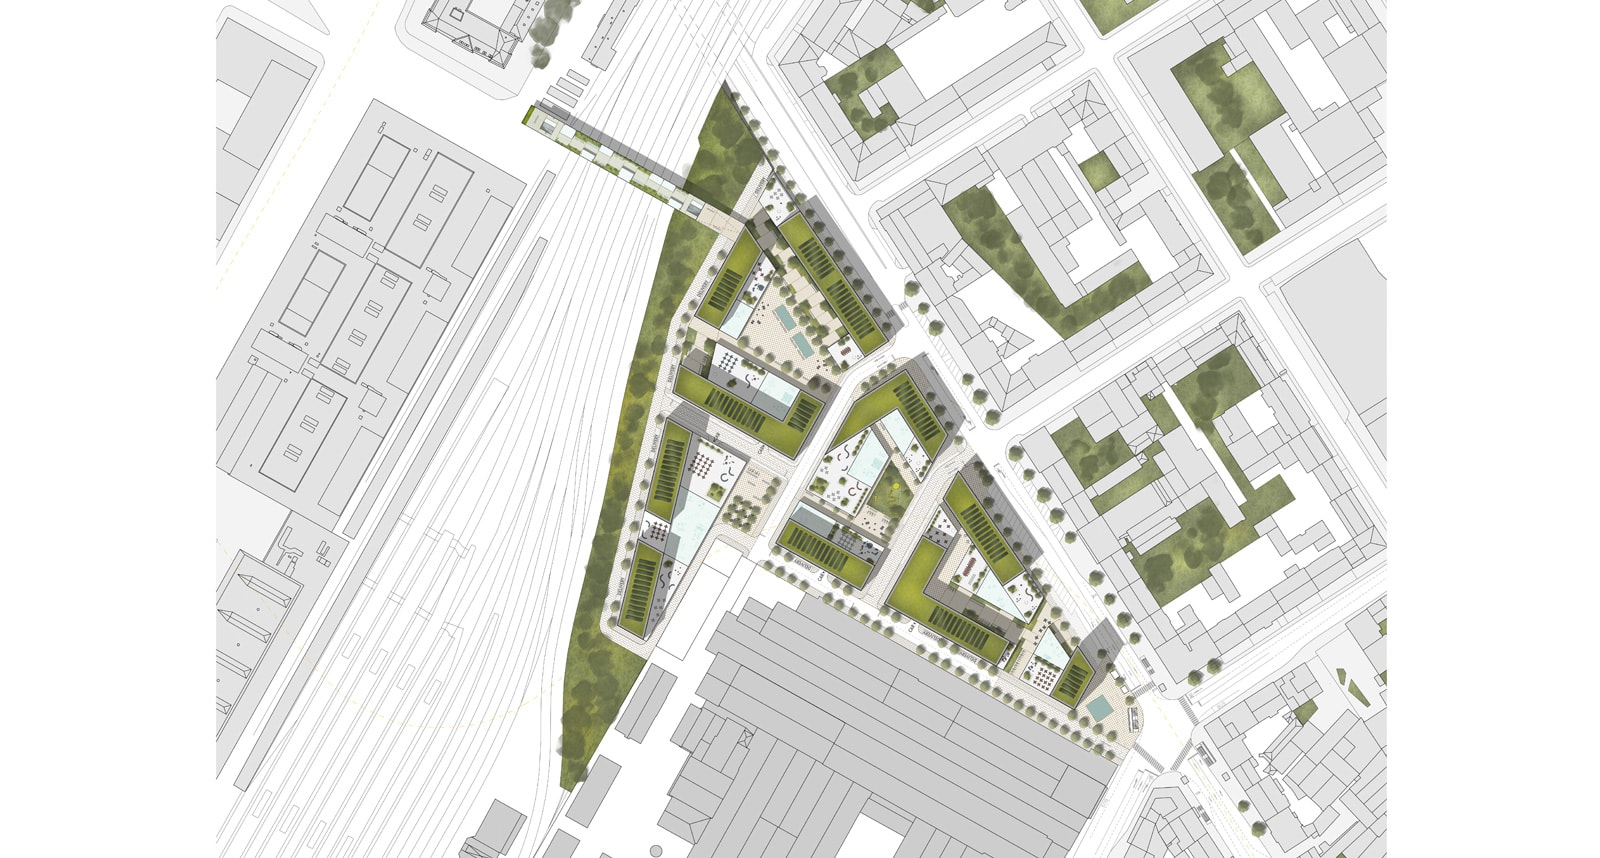 europan-14-fablinz-post-process-masterplan